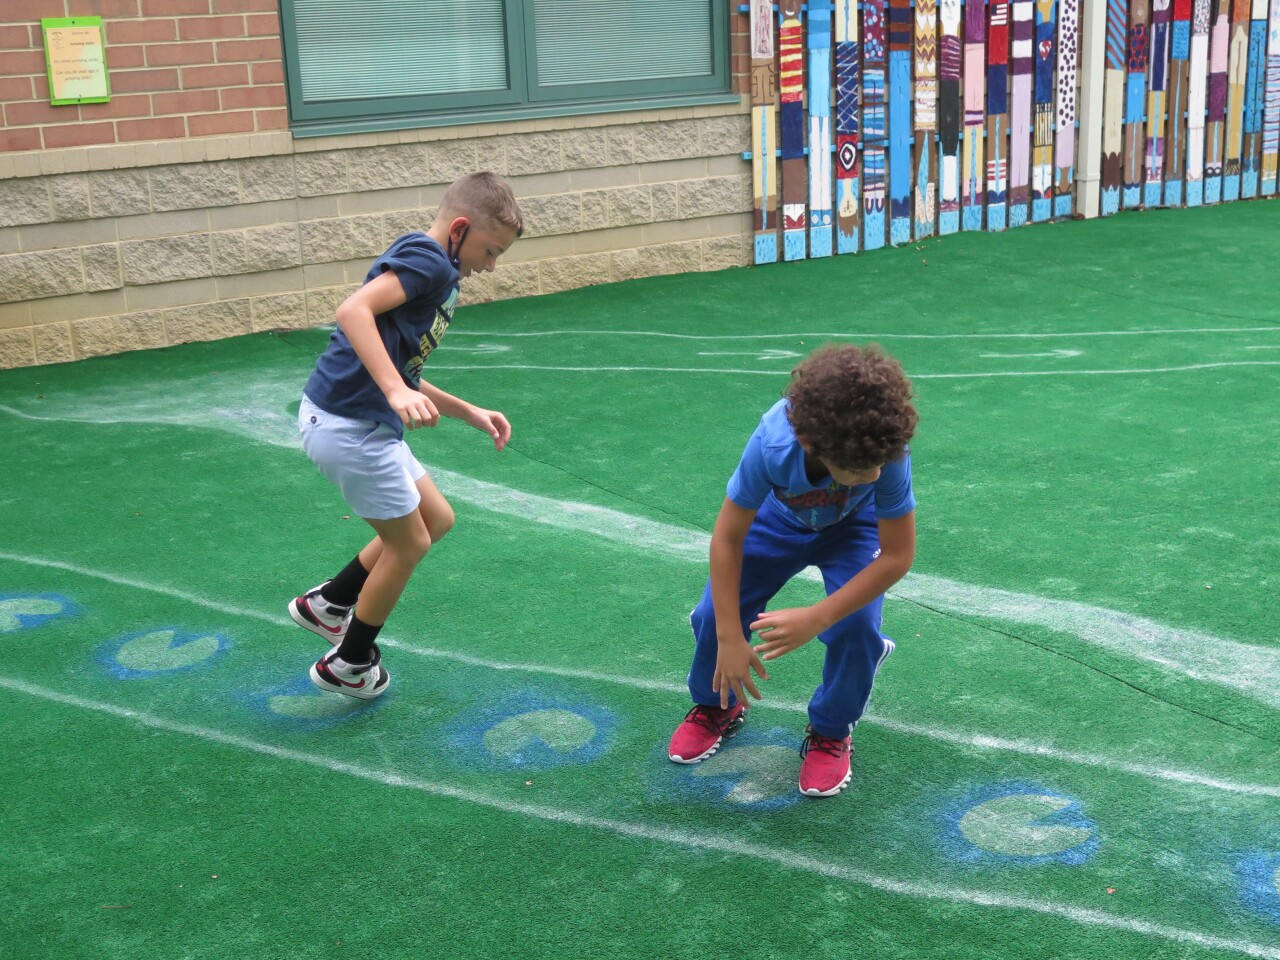 Dallas Meeker, left, and Kamdyn Crump hop across images of lily pads as part of the sensory path.